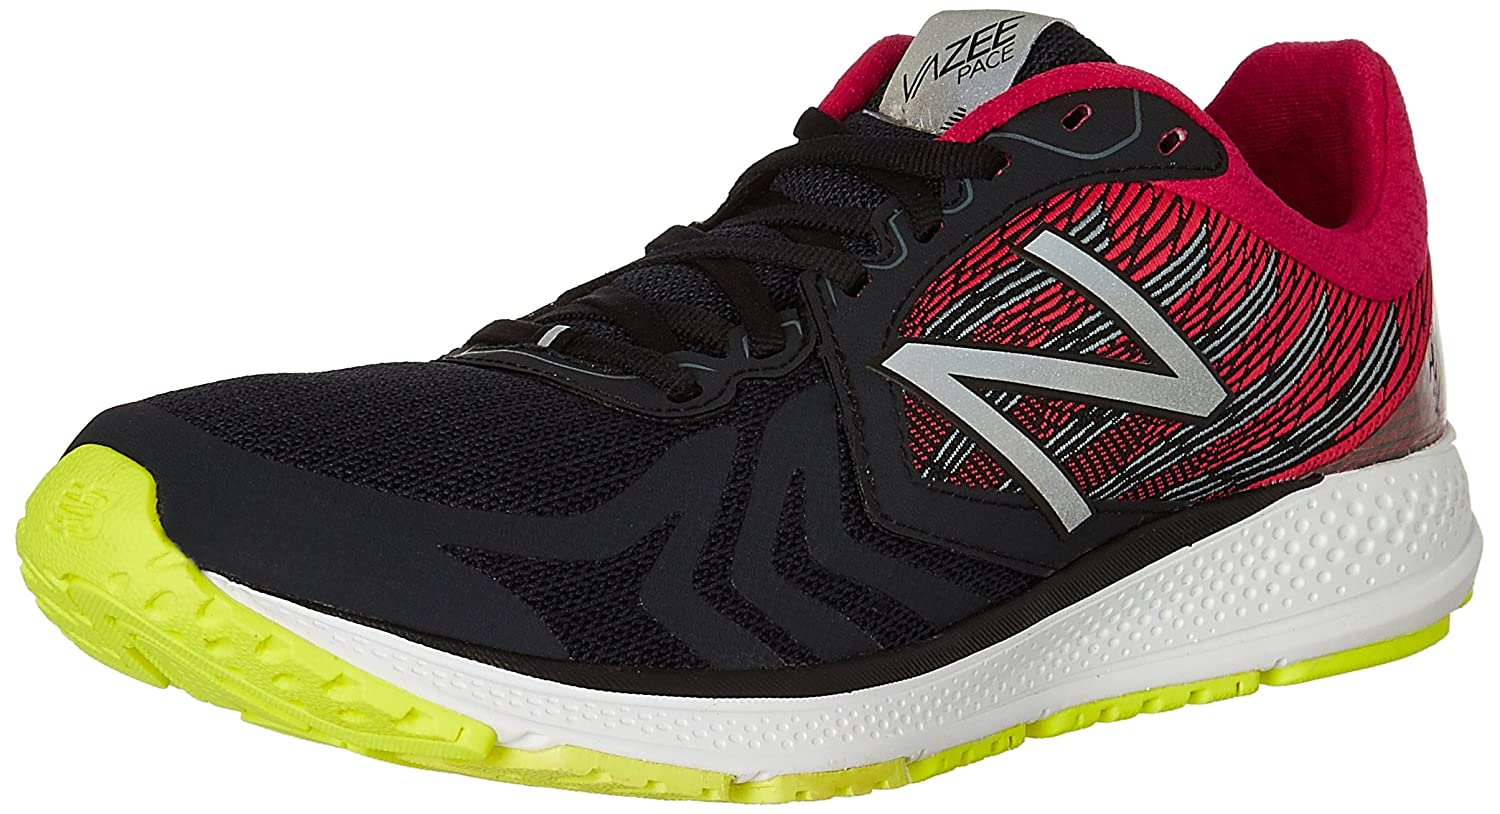 New Balance Men's Vazee Pace V2 Running Shoe B019D1E1D8 11 2E US|Black/Pink